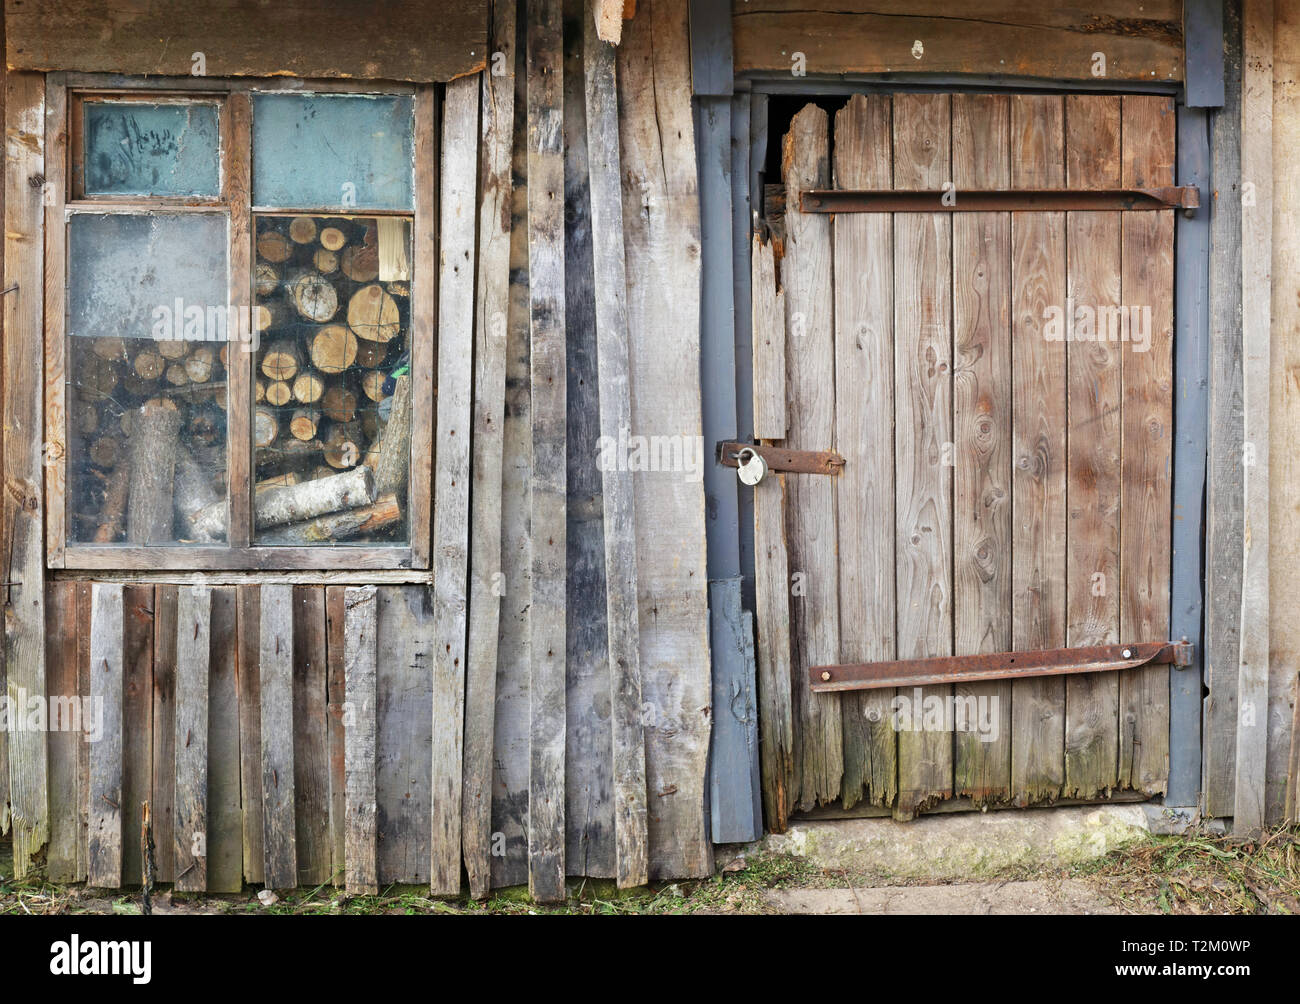 Usual no name wooden vintage  wall of rural shed for storage of firewood and agricultural tools. Panoramic collage from several outdoor shots - Stock Image